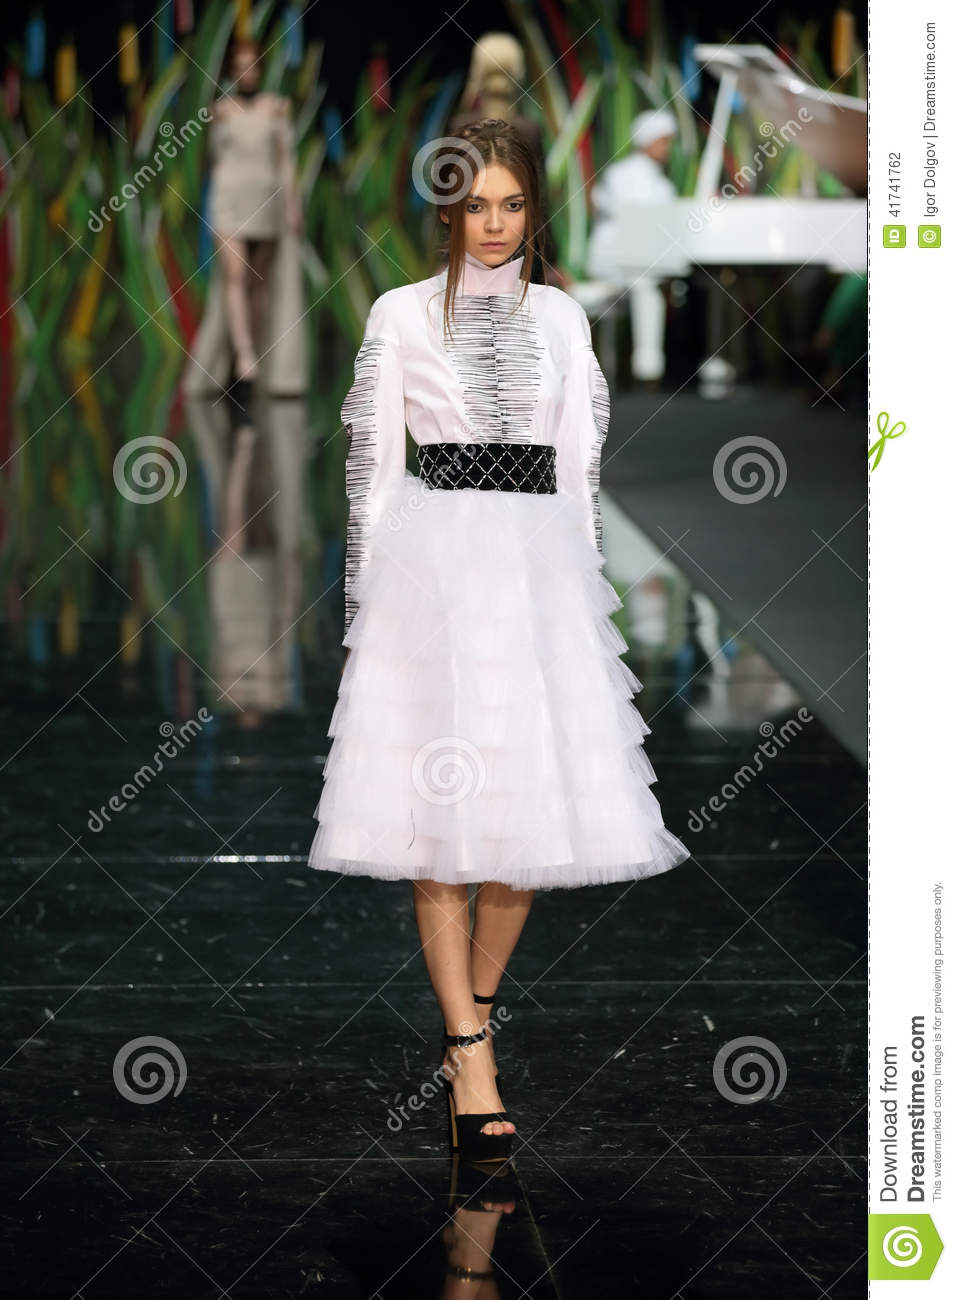 Moscow Fashion Week Editorial Photography Image 41741762